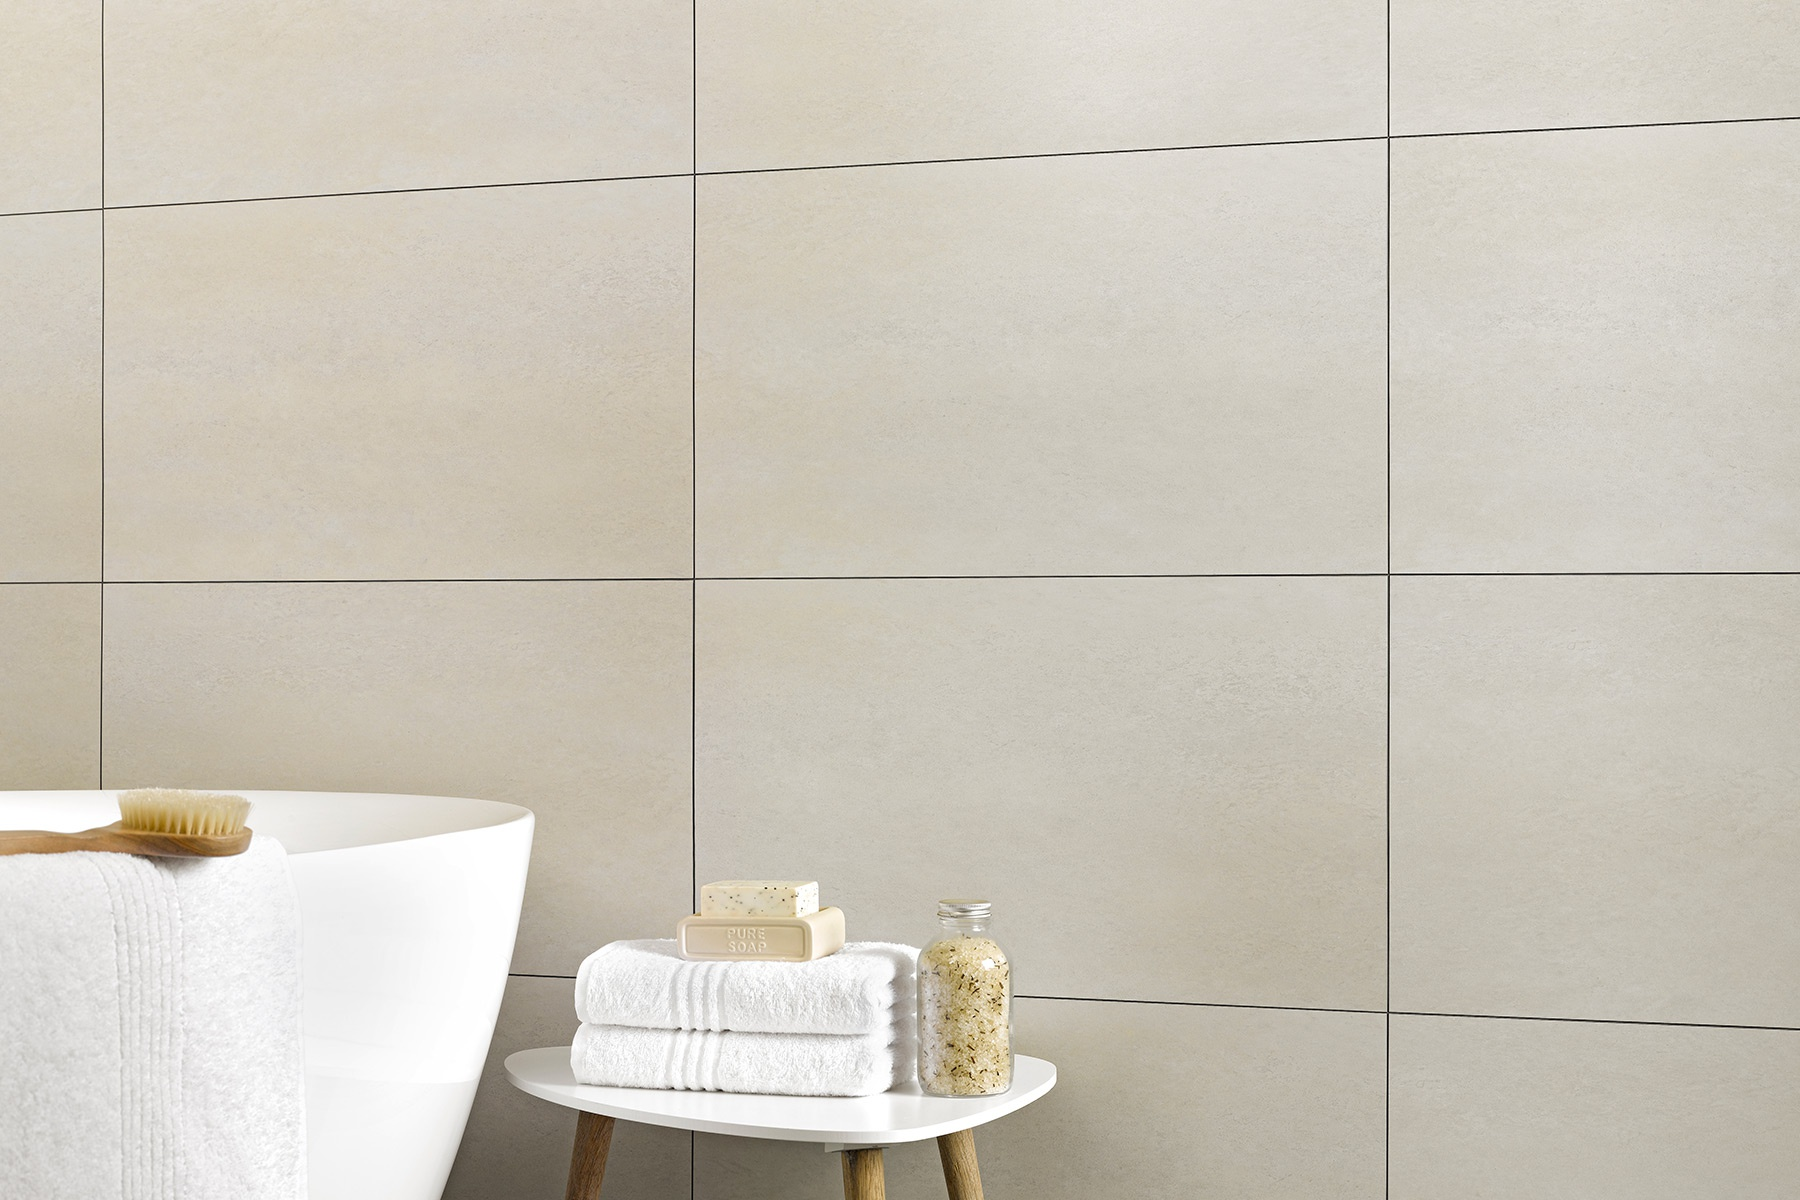 Salle De Bain Taupe Beige waterproof pvc tongue-and-groove wall cladding | dumawall+